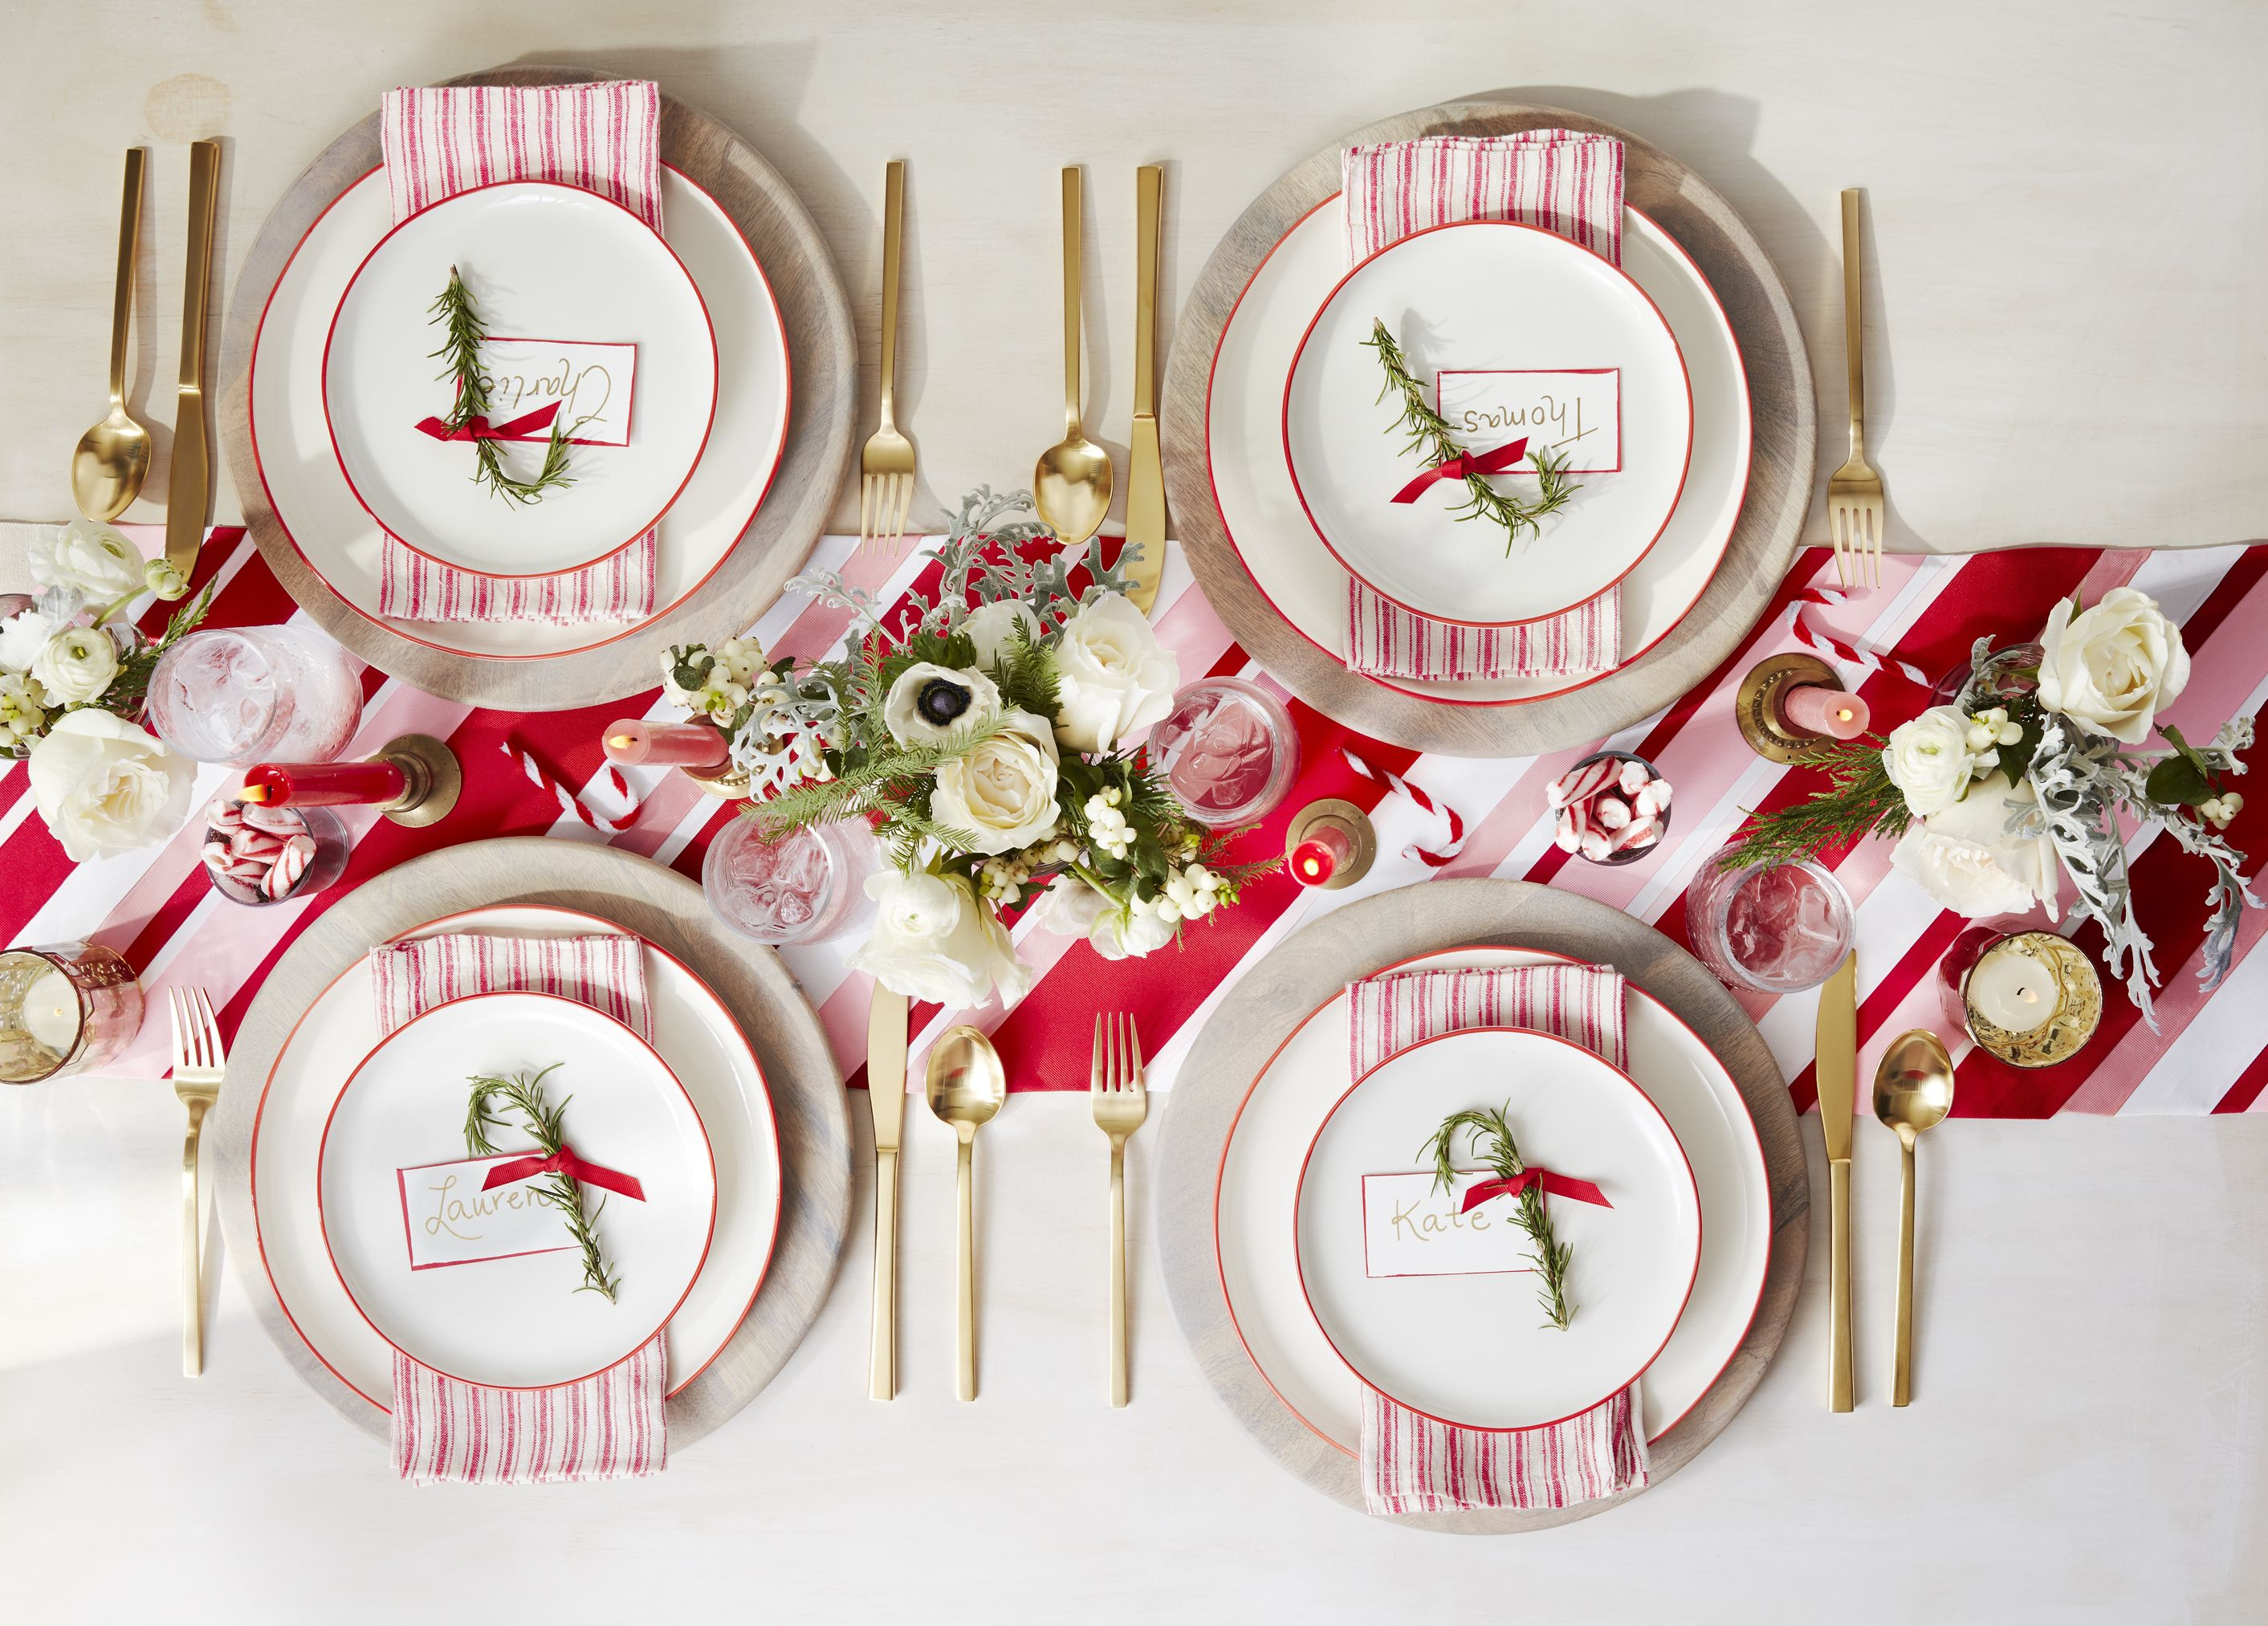 20 Fun Family Christmas Party Ideas Holiday Party Food And Decor Tips